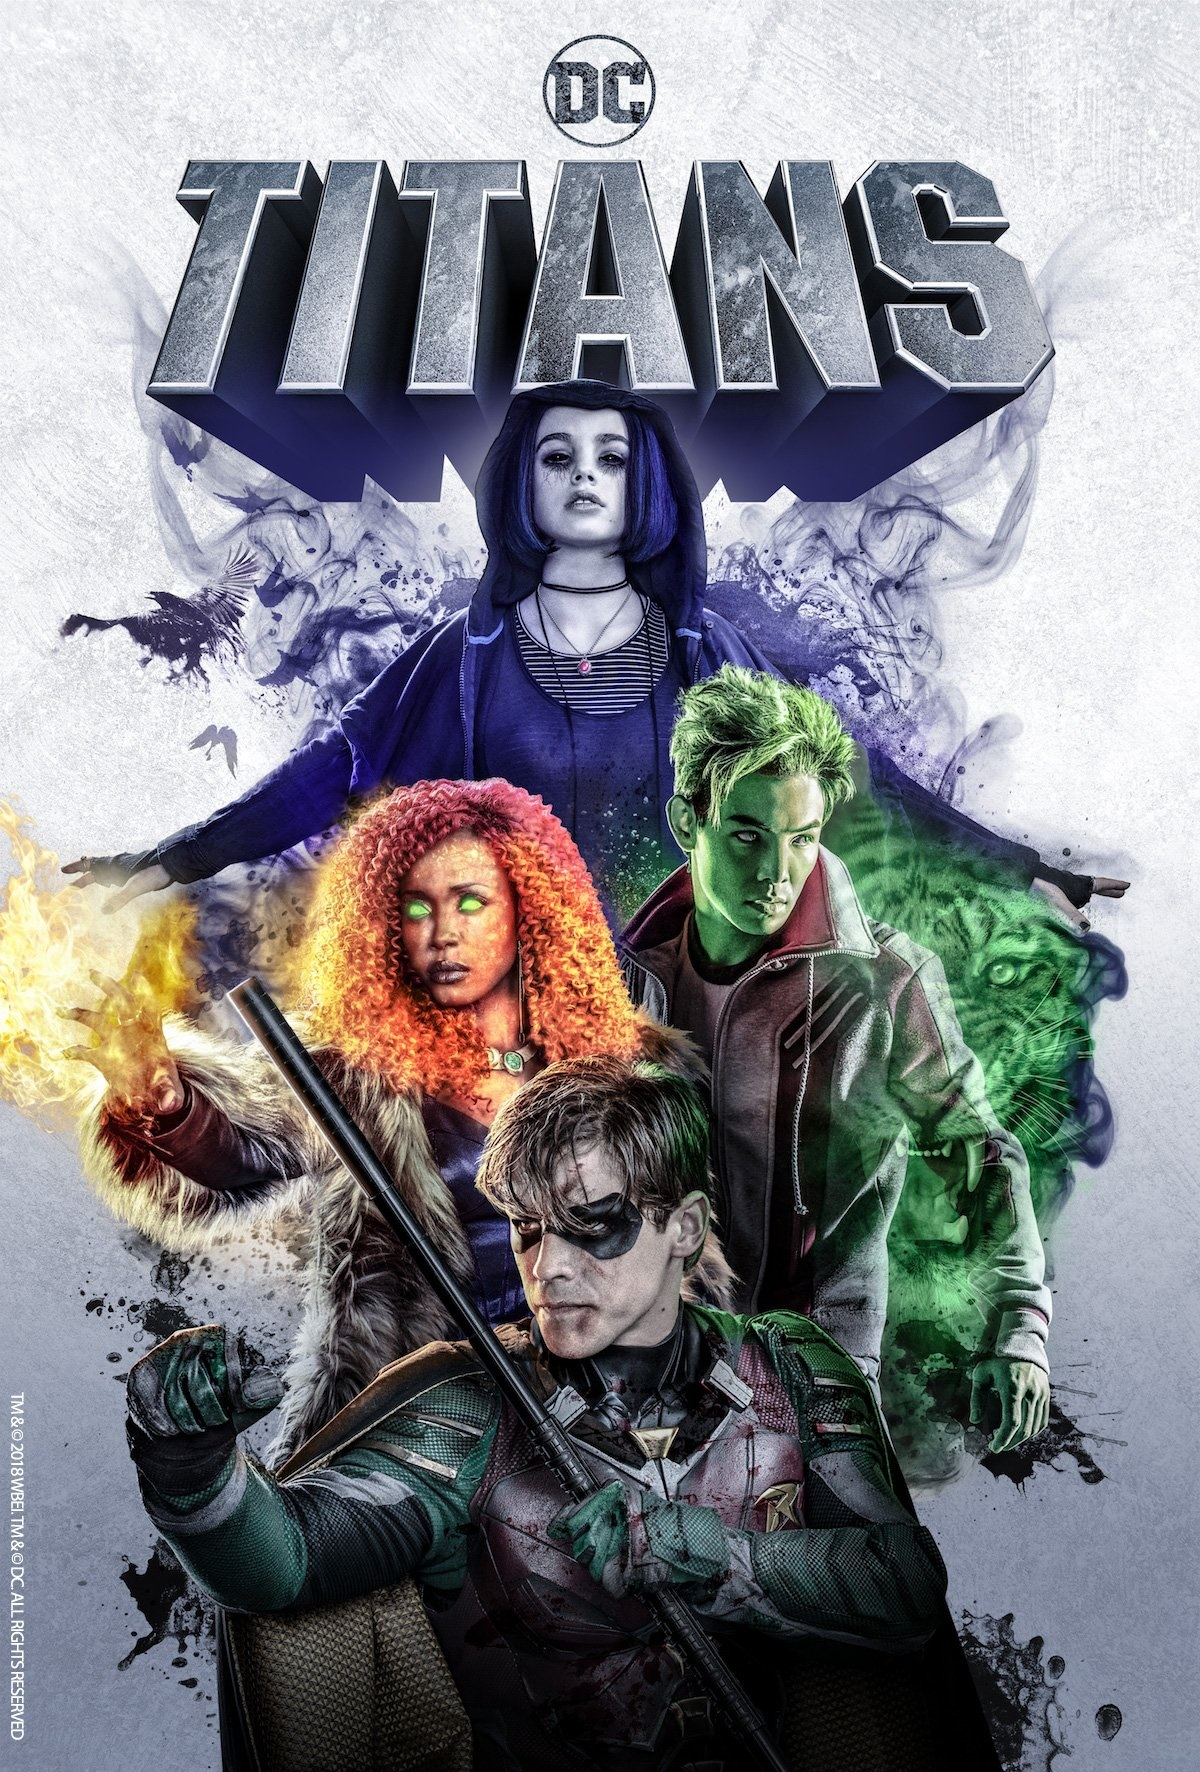 The new Titans poster